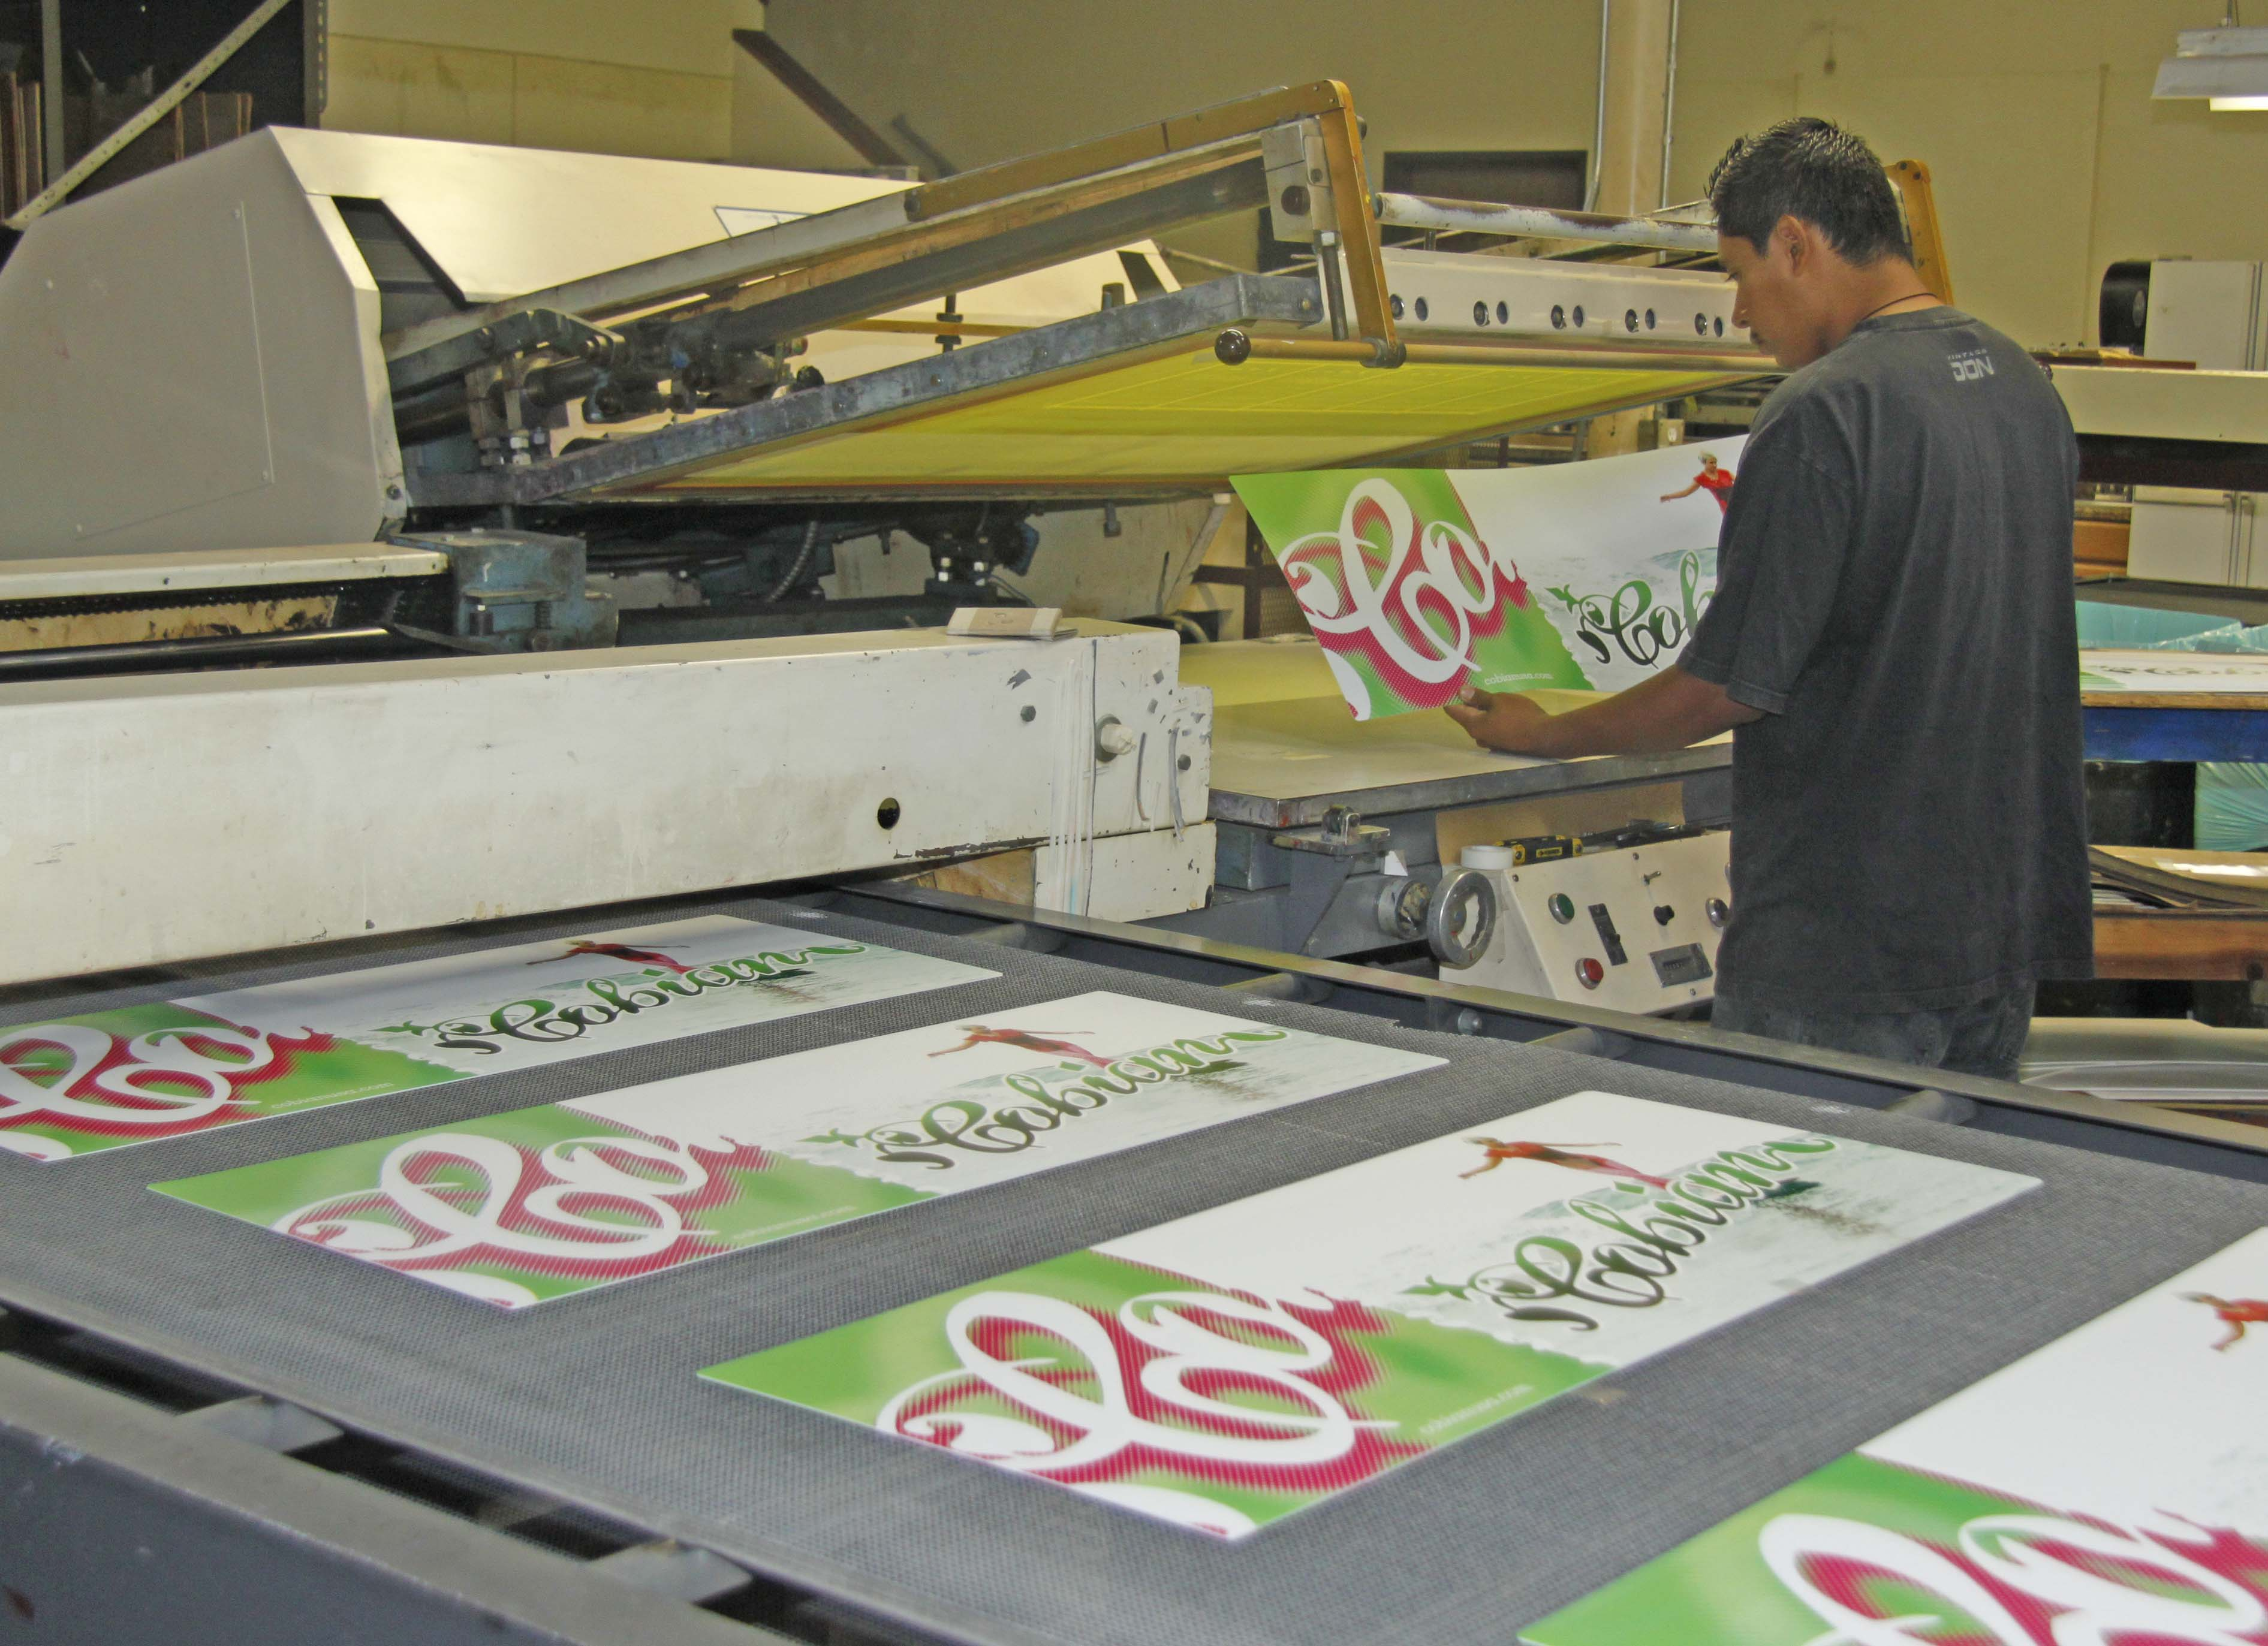 Screenprinting/Silk Screening